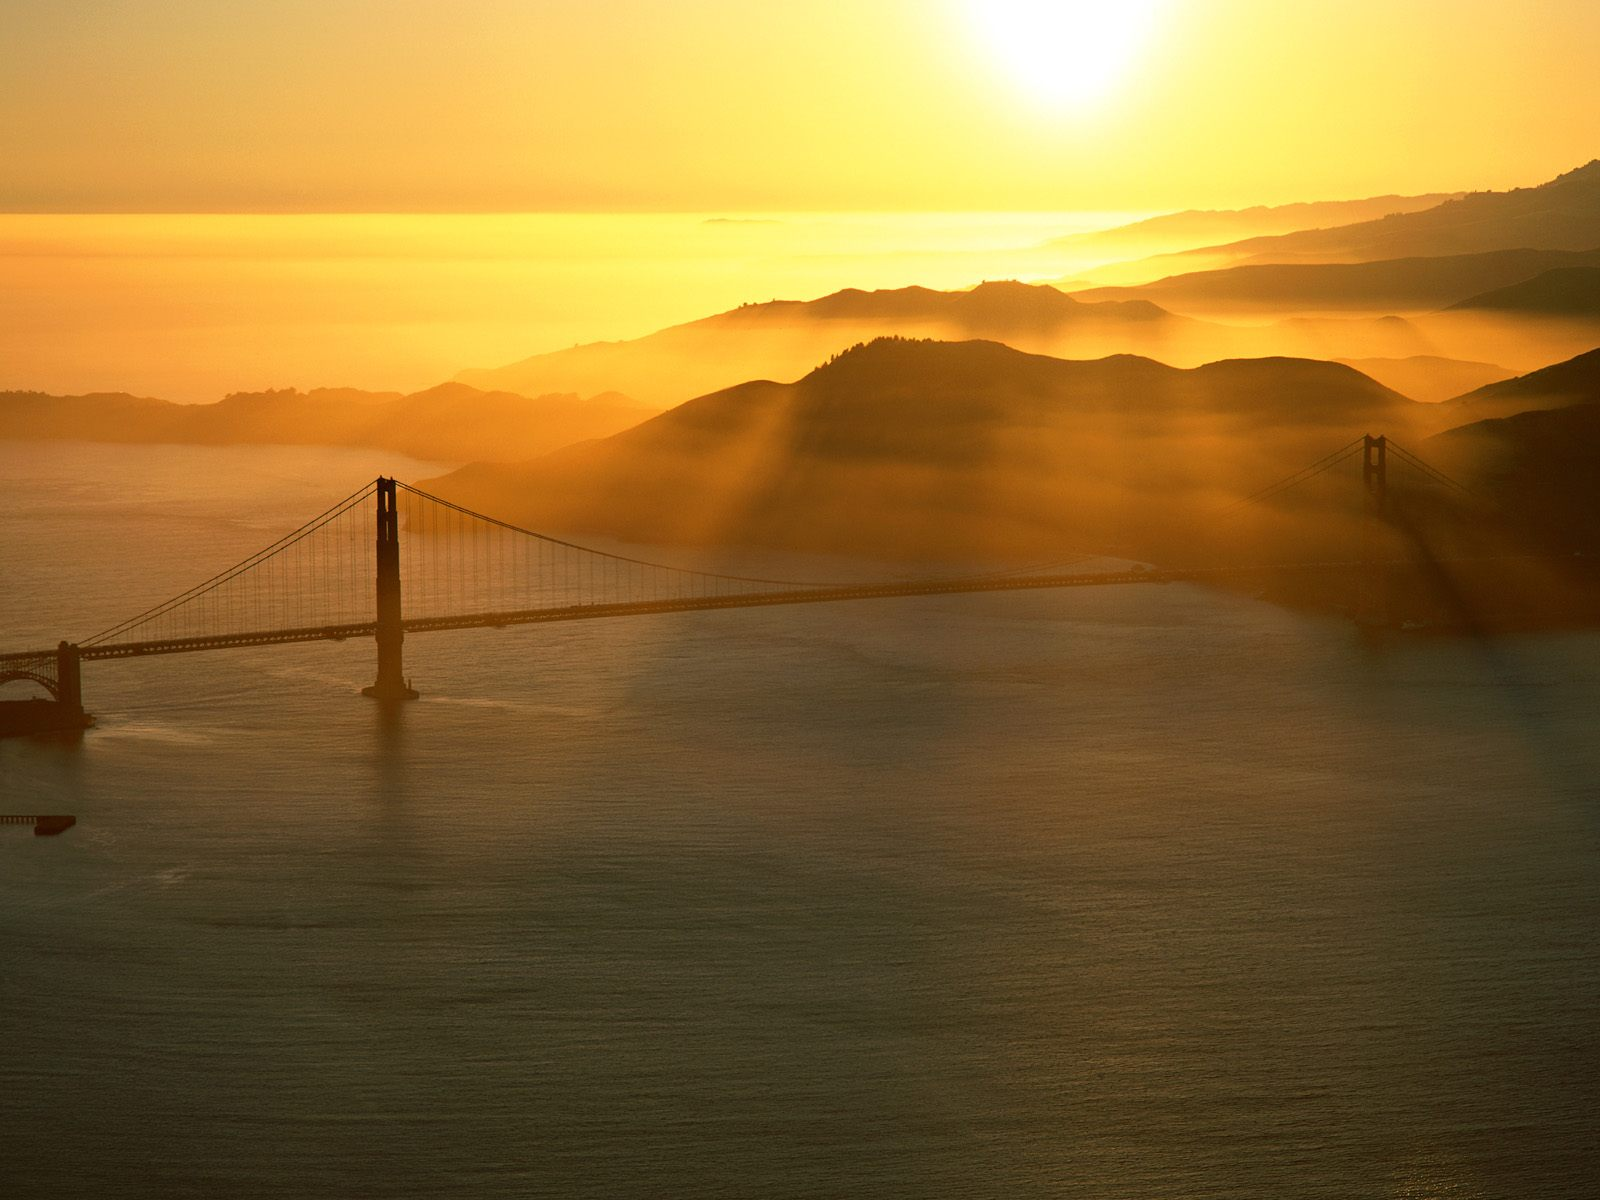 Golden Gate Sunset 1600 x 1200